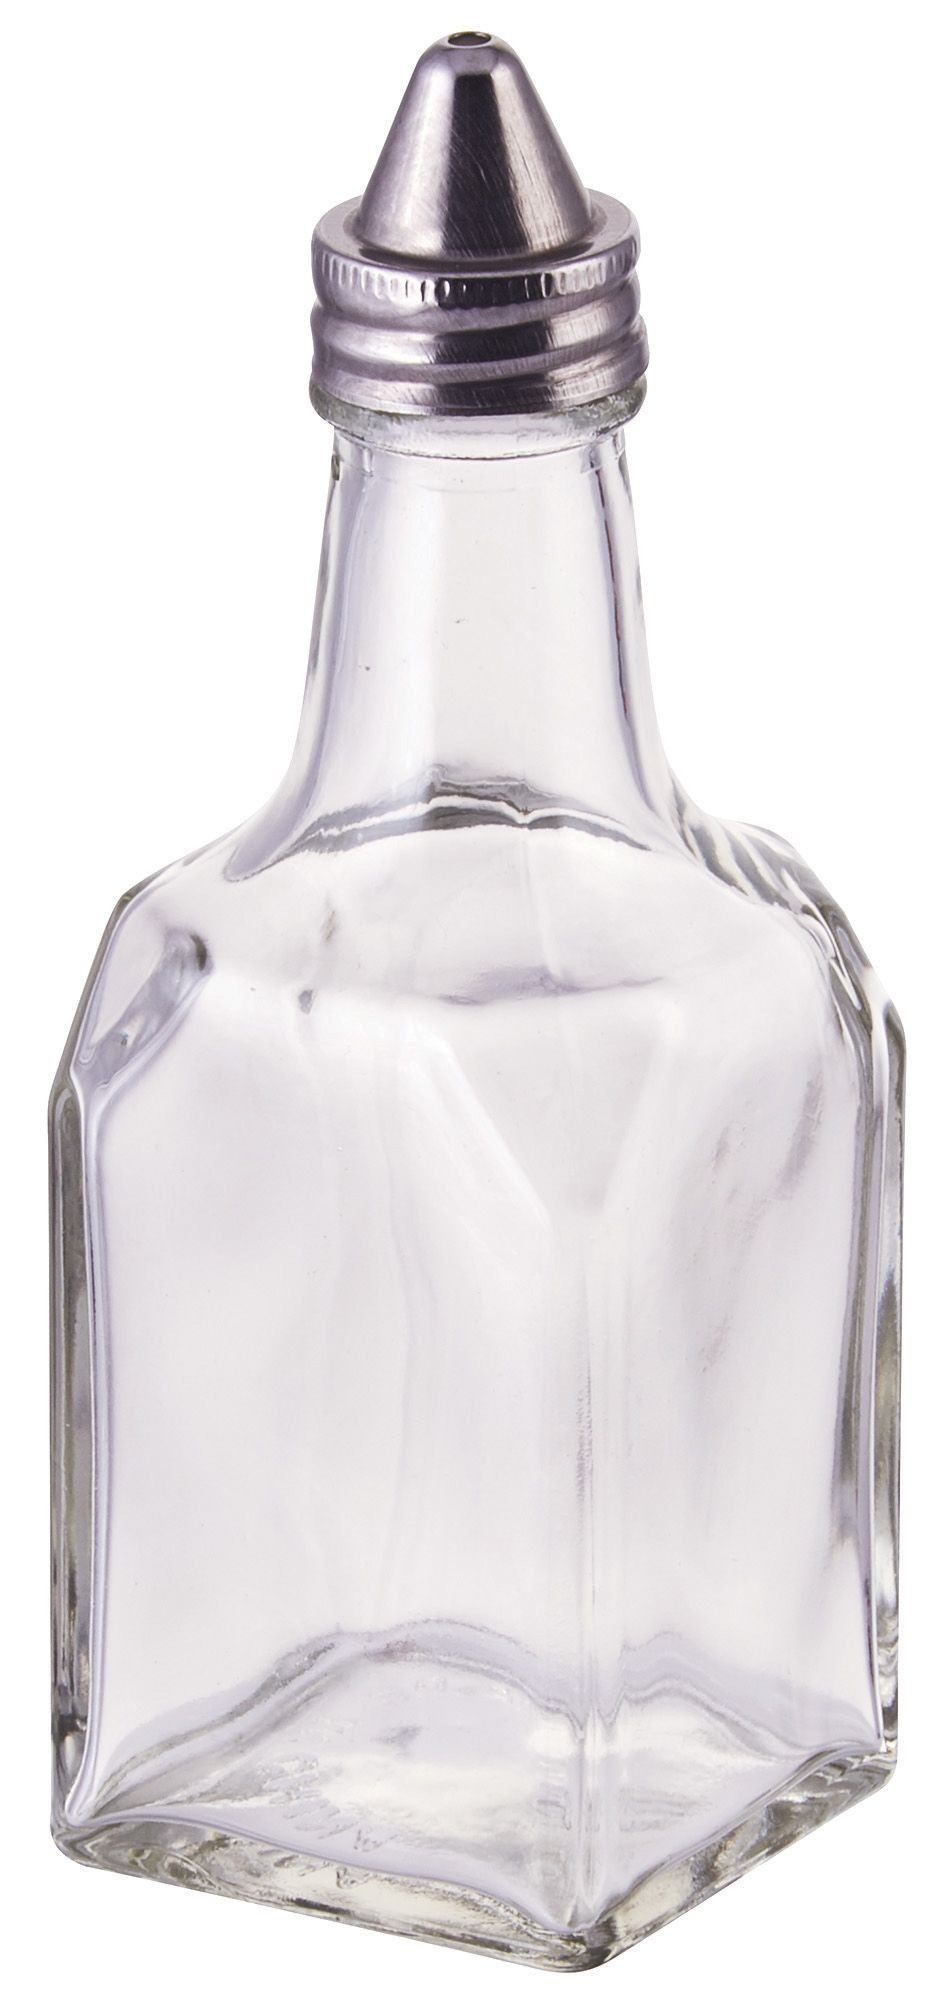 Winco G-104 Glass 6 oz. Oil and Vinegar Cruet